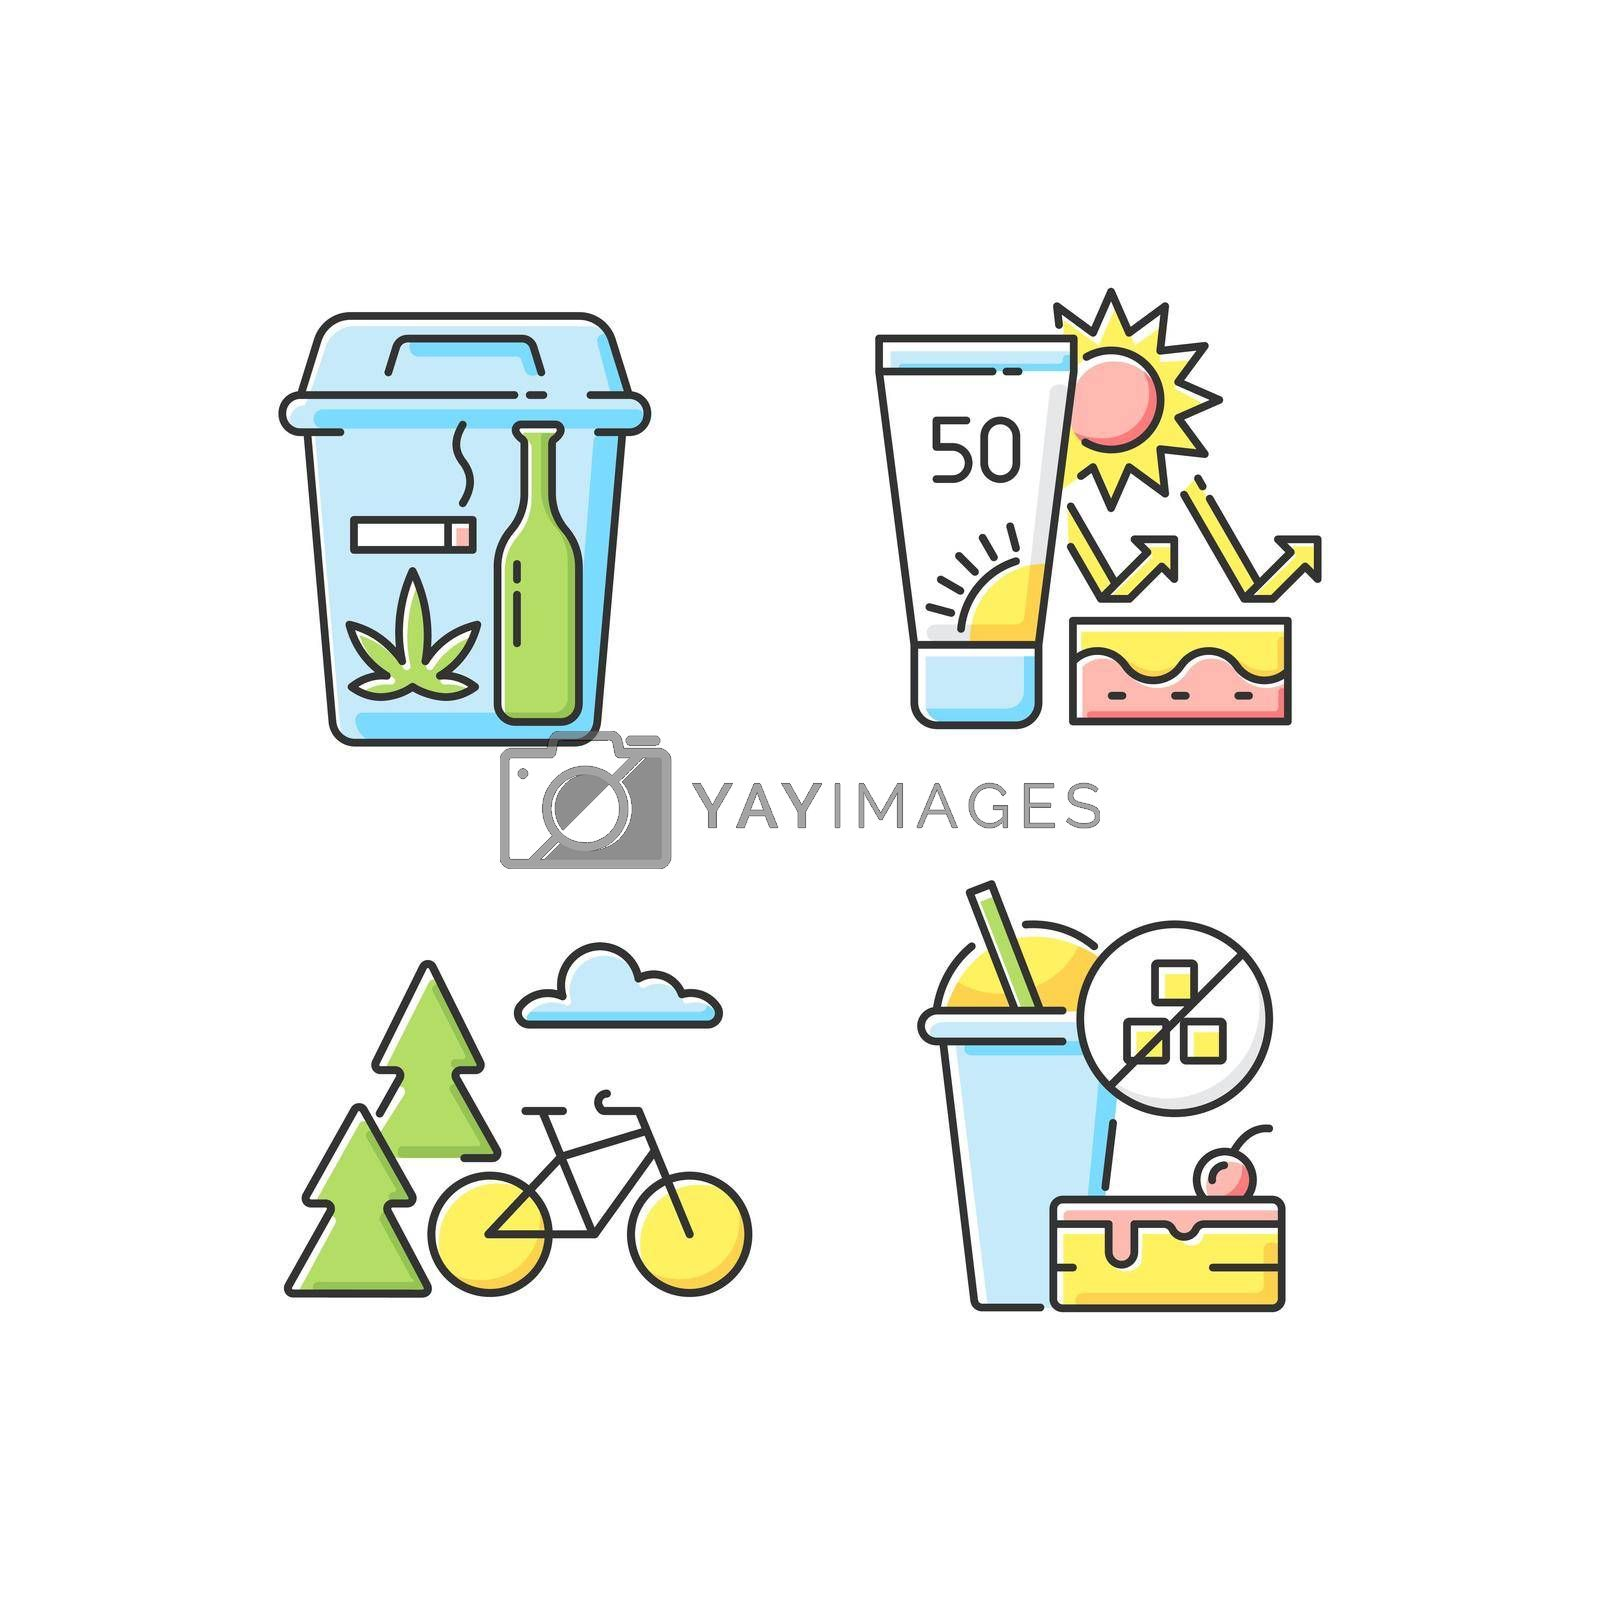 Healthy habits RGB color icons set. Quitting bad habits. Skin protection. Outdoor activity. No added sugar. Self improvement, personal development. Change lifestyle. Isolated vector illustrations